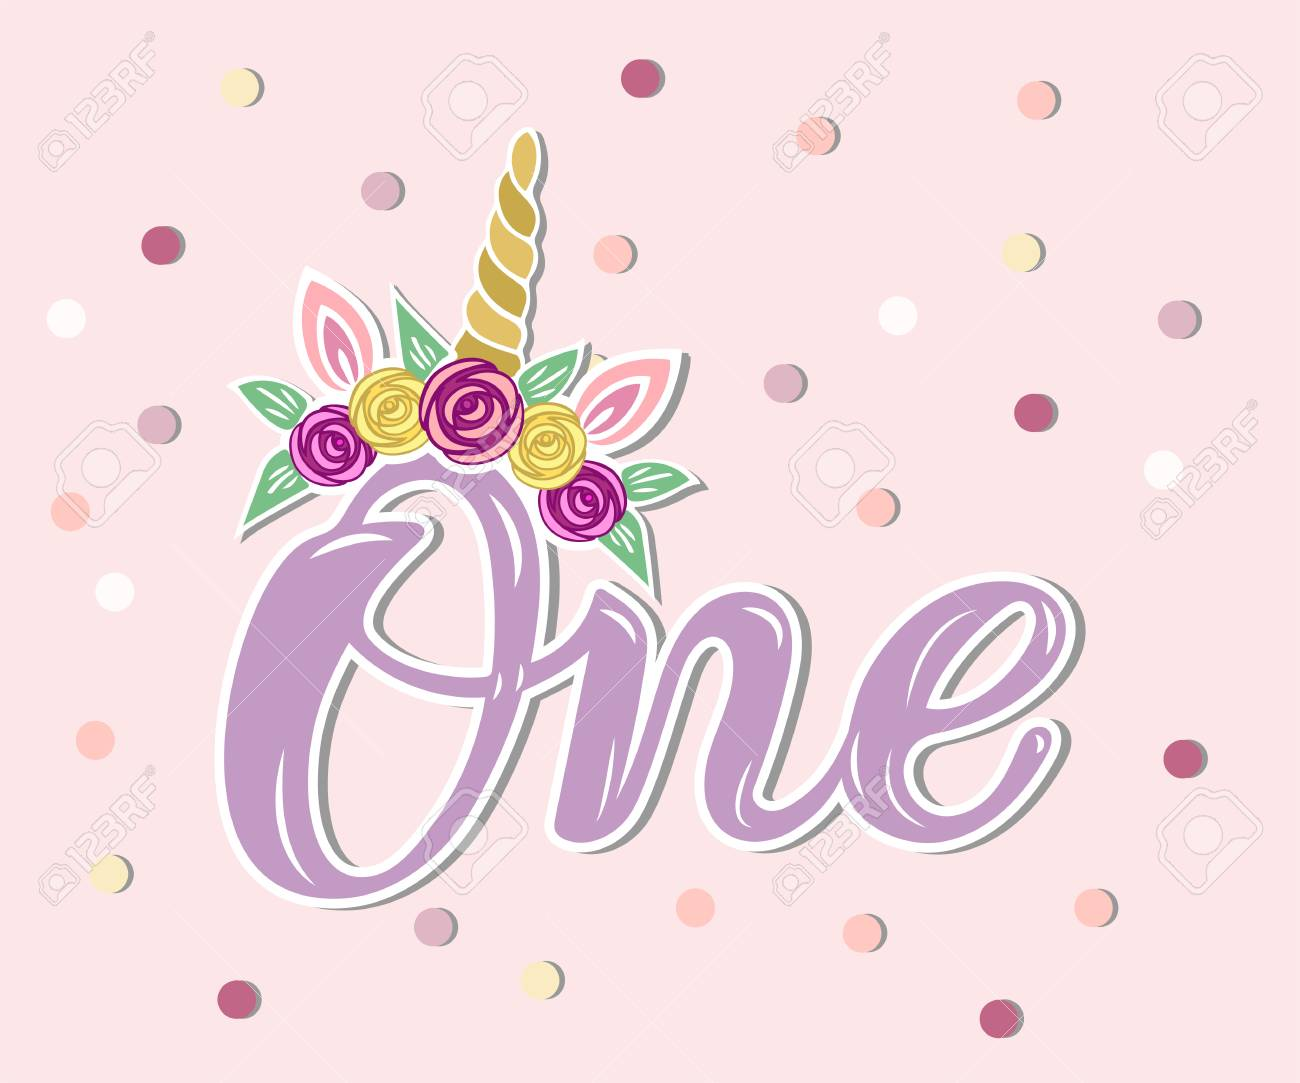 Handwritten Lettering One With Unicorn Horn And Flower Wreath Royalty Free Cliparts Vectors And Stock Illustration Image 100314496